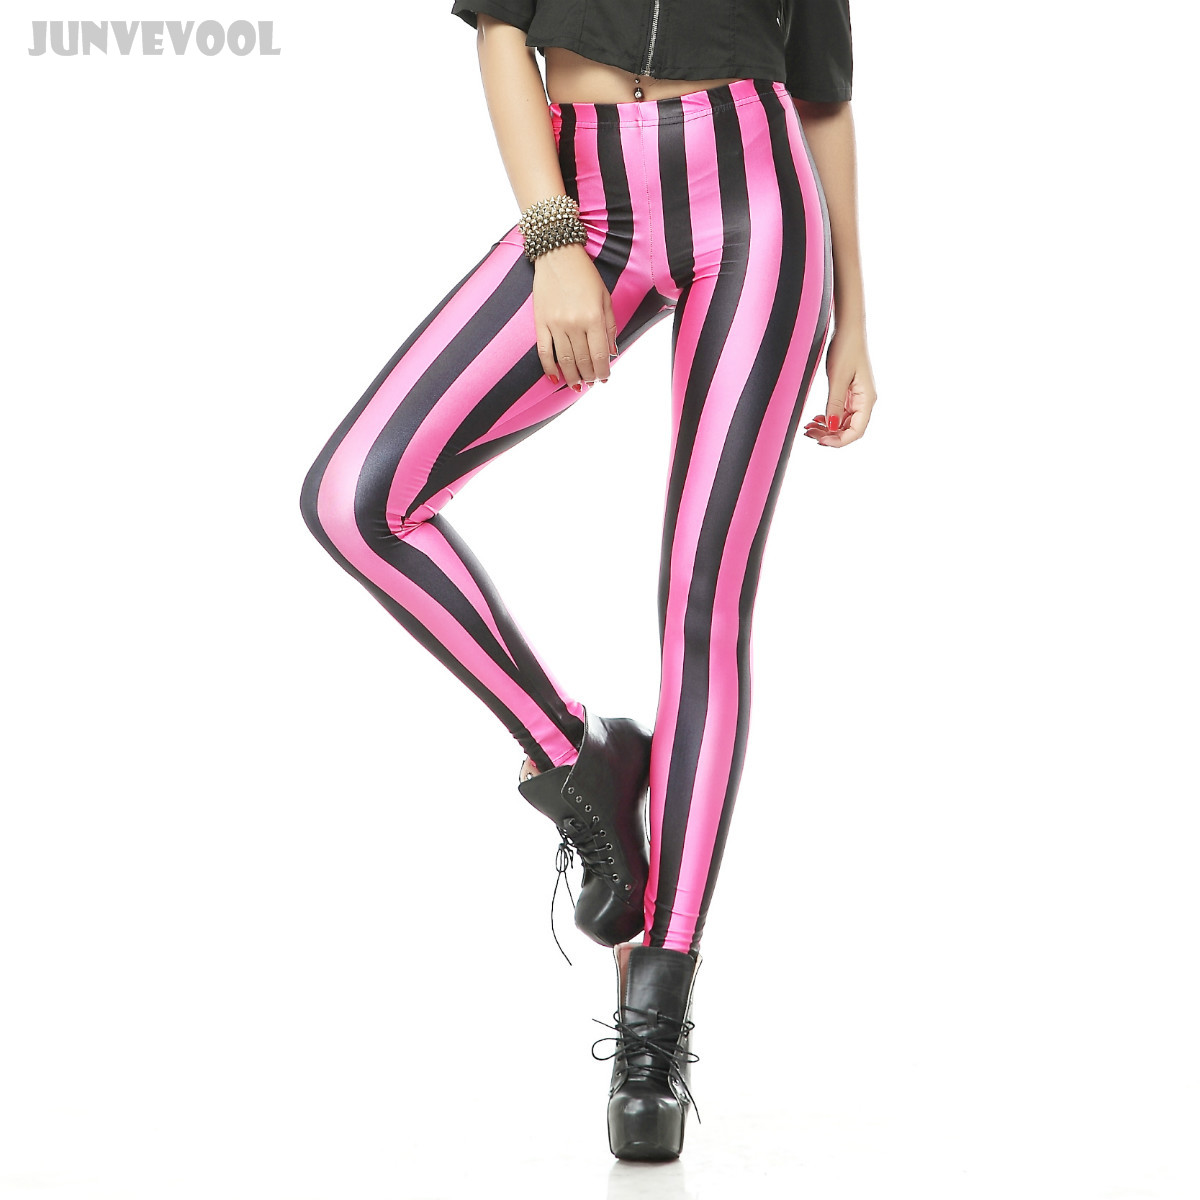 Leggings   Xxxl Women Pink Vertical Stripes Red Black Color Patchwork 3D Graphic Print Skinny Stretchy Runner Fitness Soft Pants